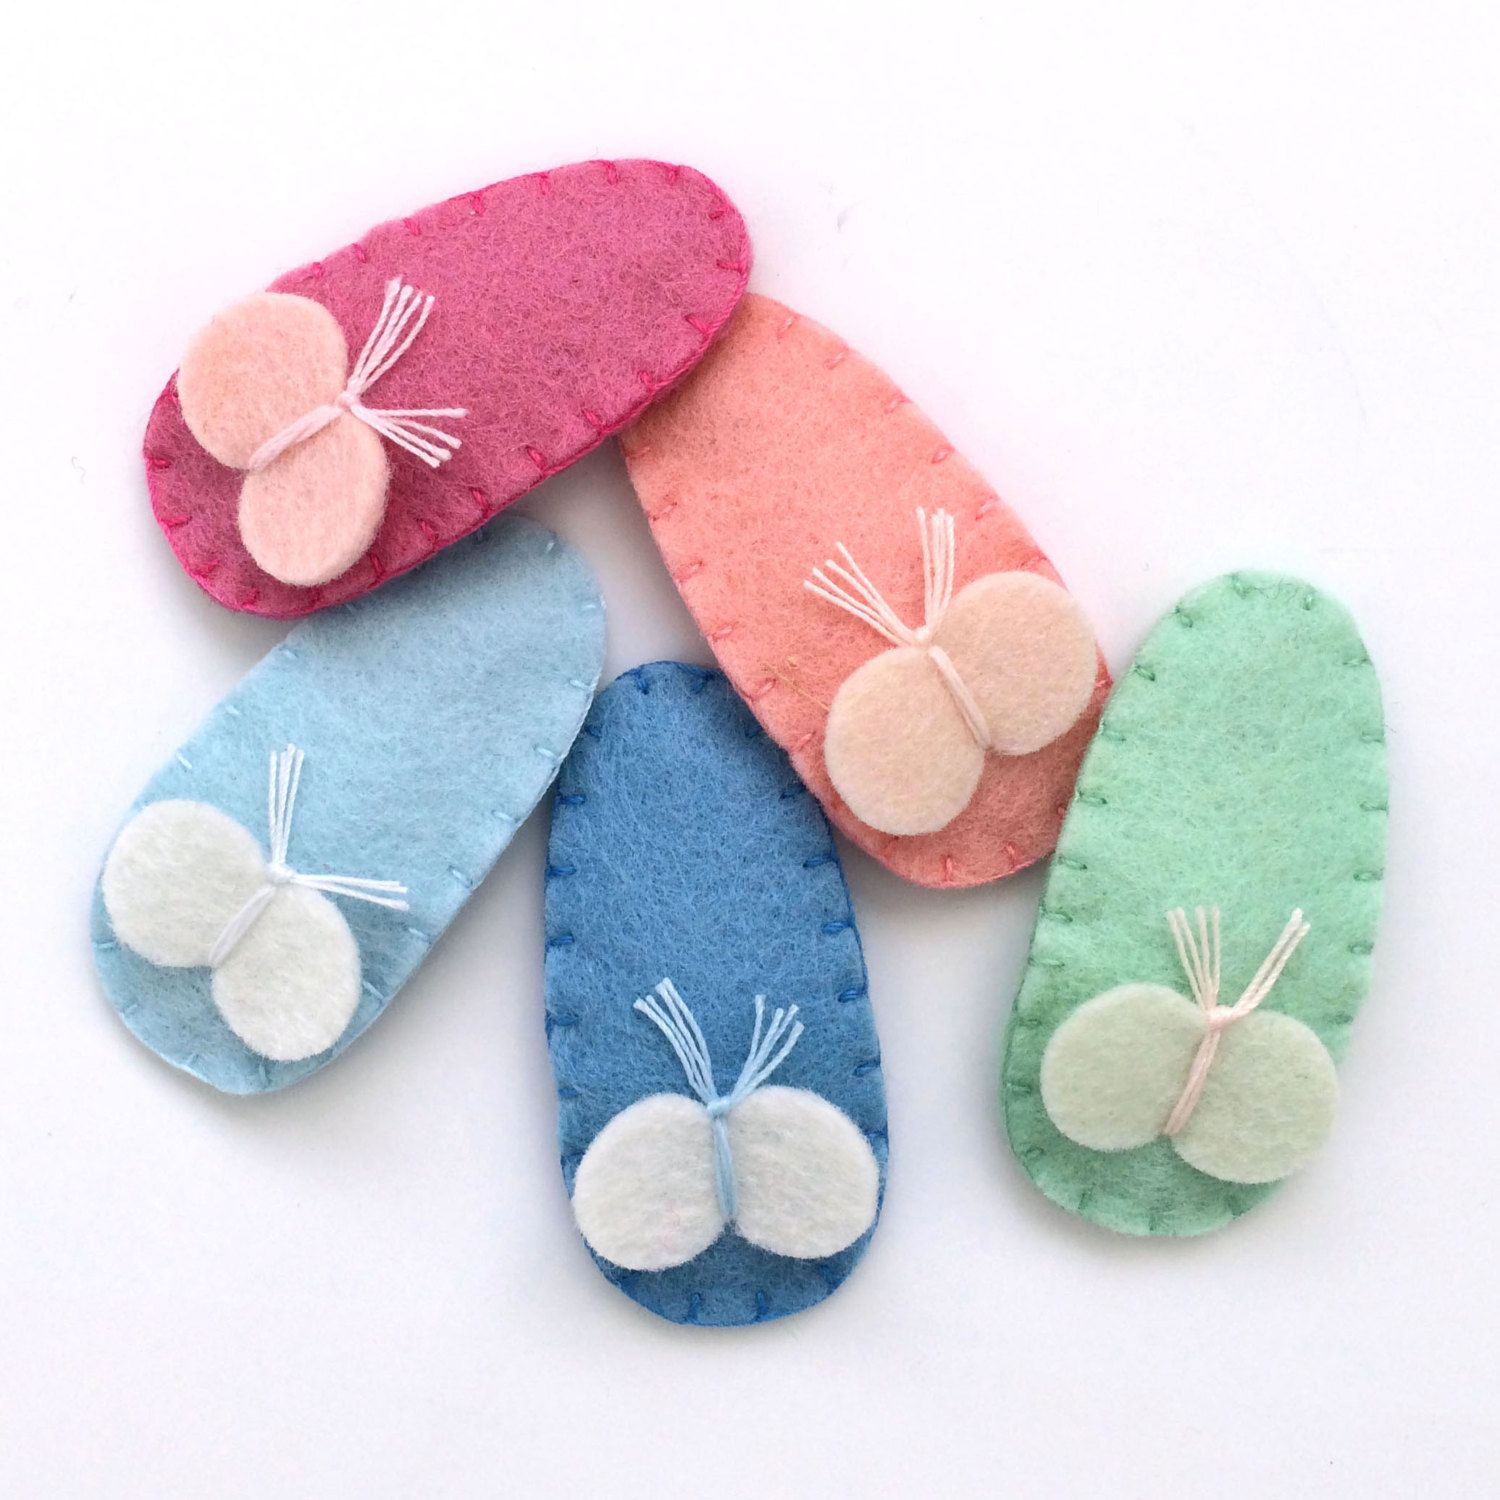 Items similar to Hair Clips for Babies, Tiny Butterfly Felt Hair Clip, Baby Hair Clips, Toddler Hair Accessory, Infant Hair Clip, Hair Clips for Toddlers on Etsy #babyhairaccessories